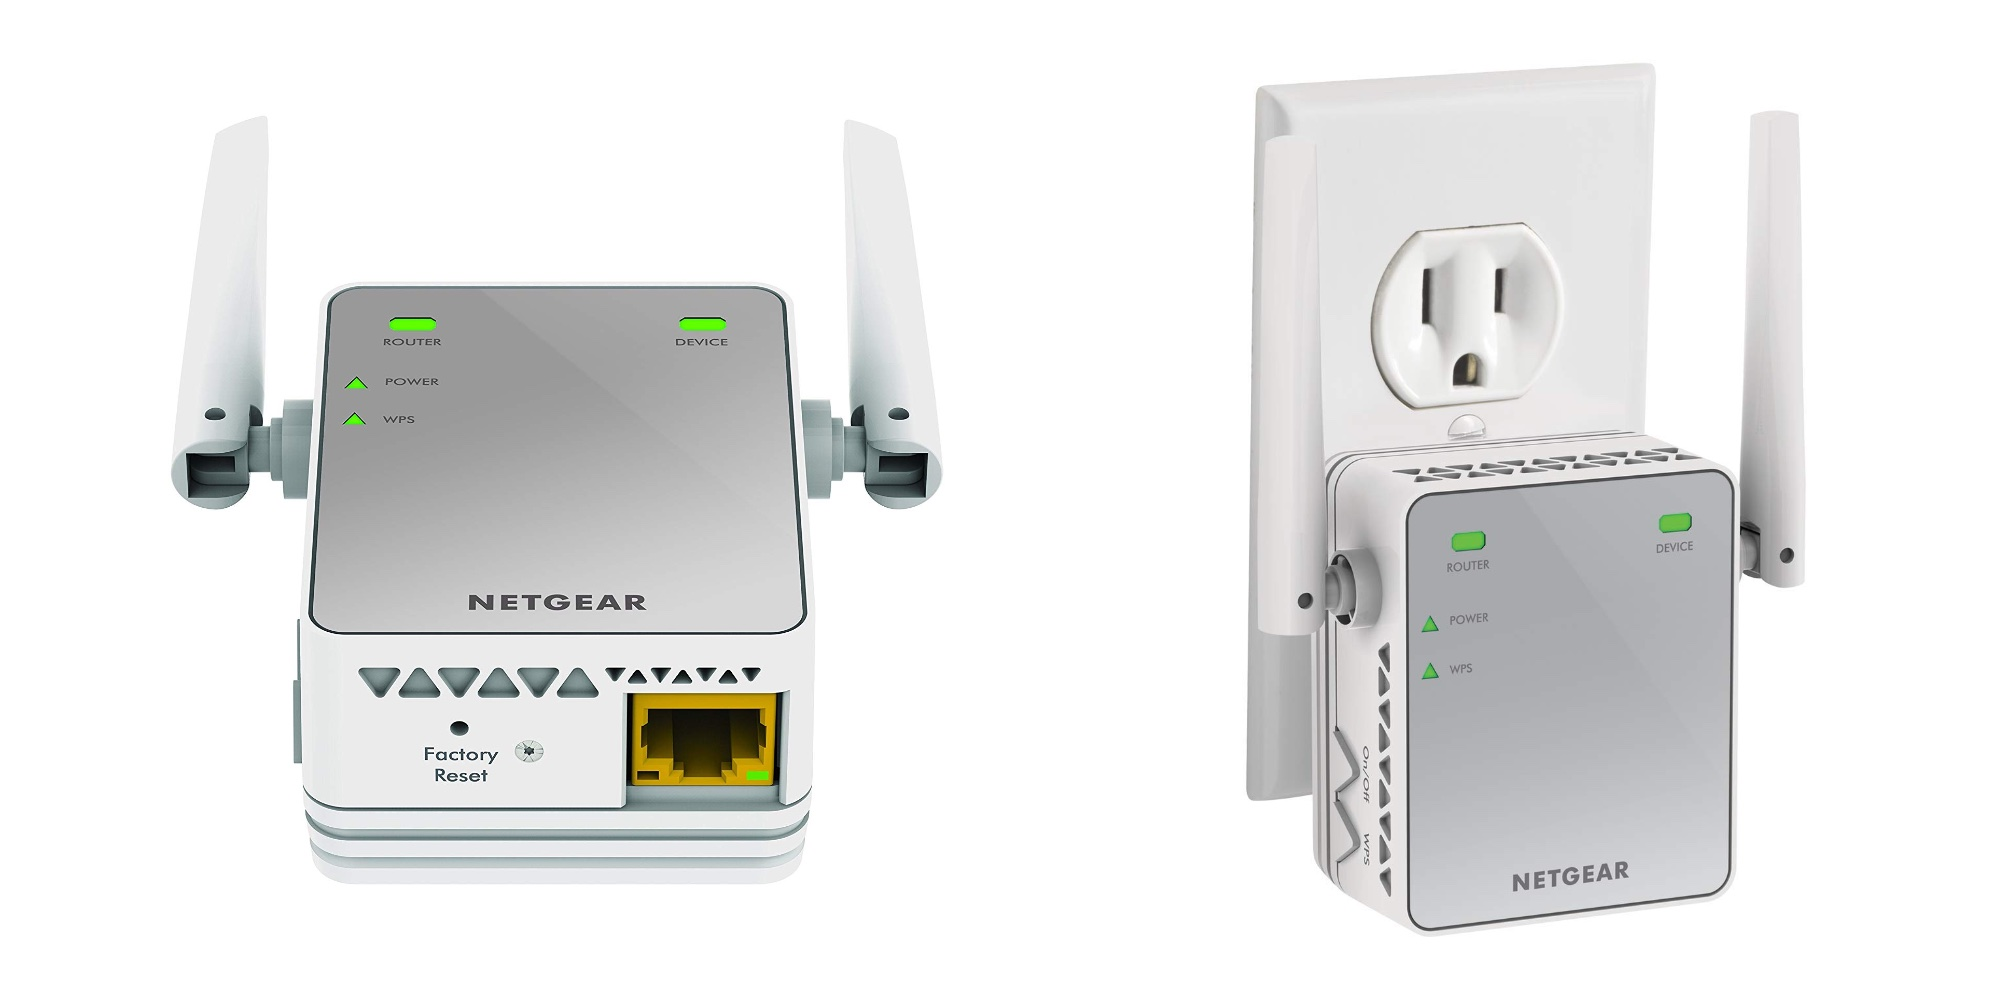 Give your Wi-Fi a boost with NETGEAR's 802 11ac Range Extender at